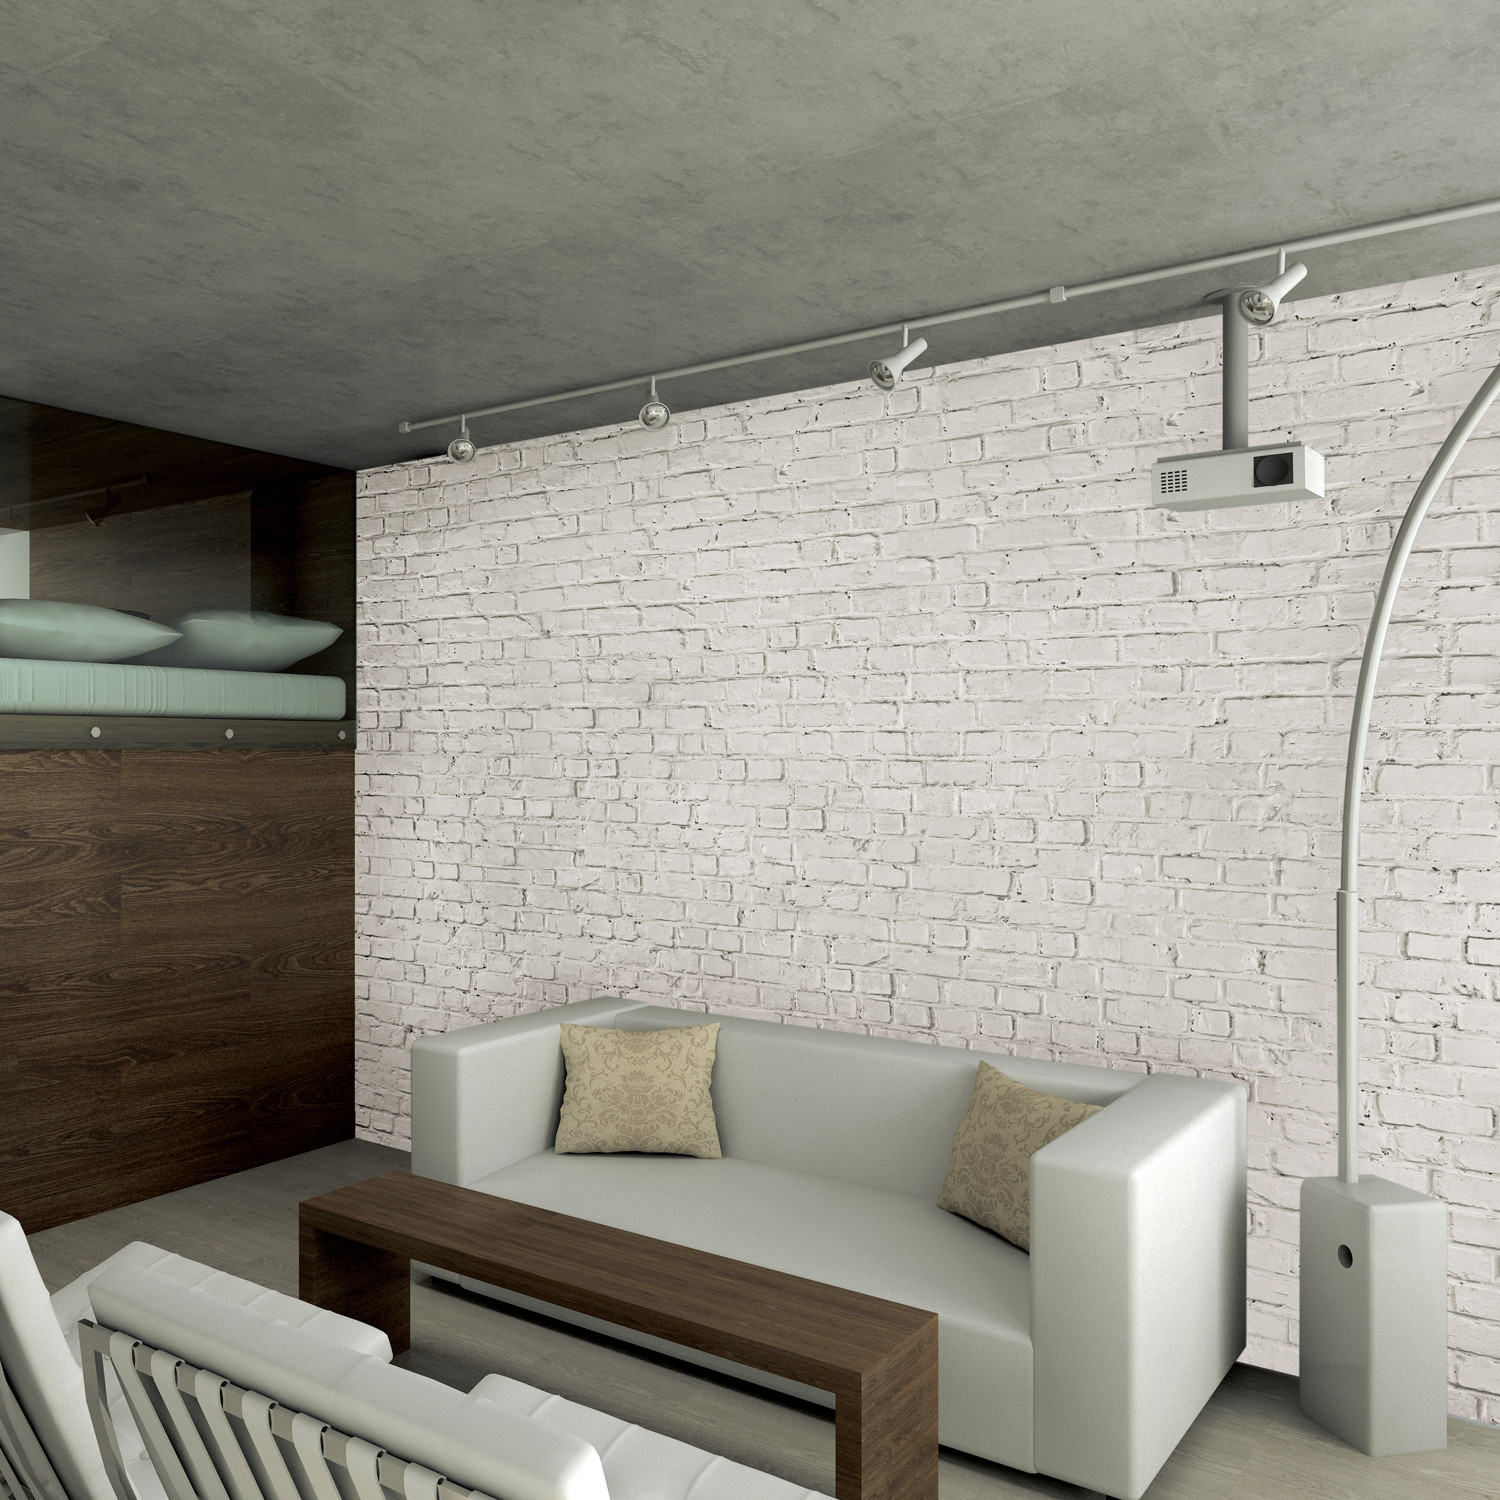 White loft brick wall 1 wall murals touch of modern for Distressed brick wall mural